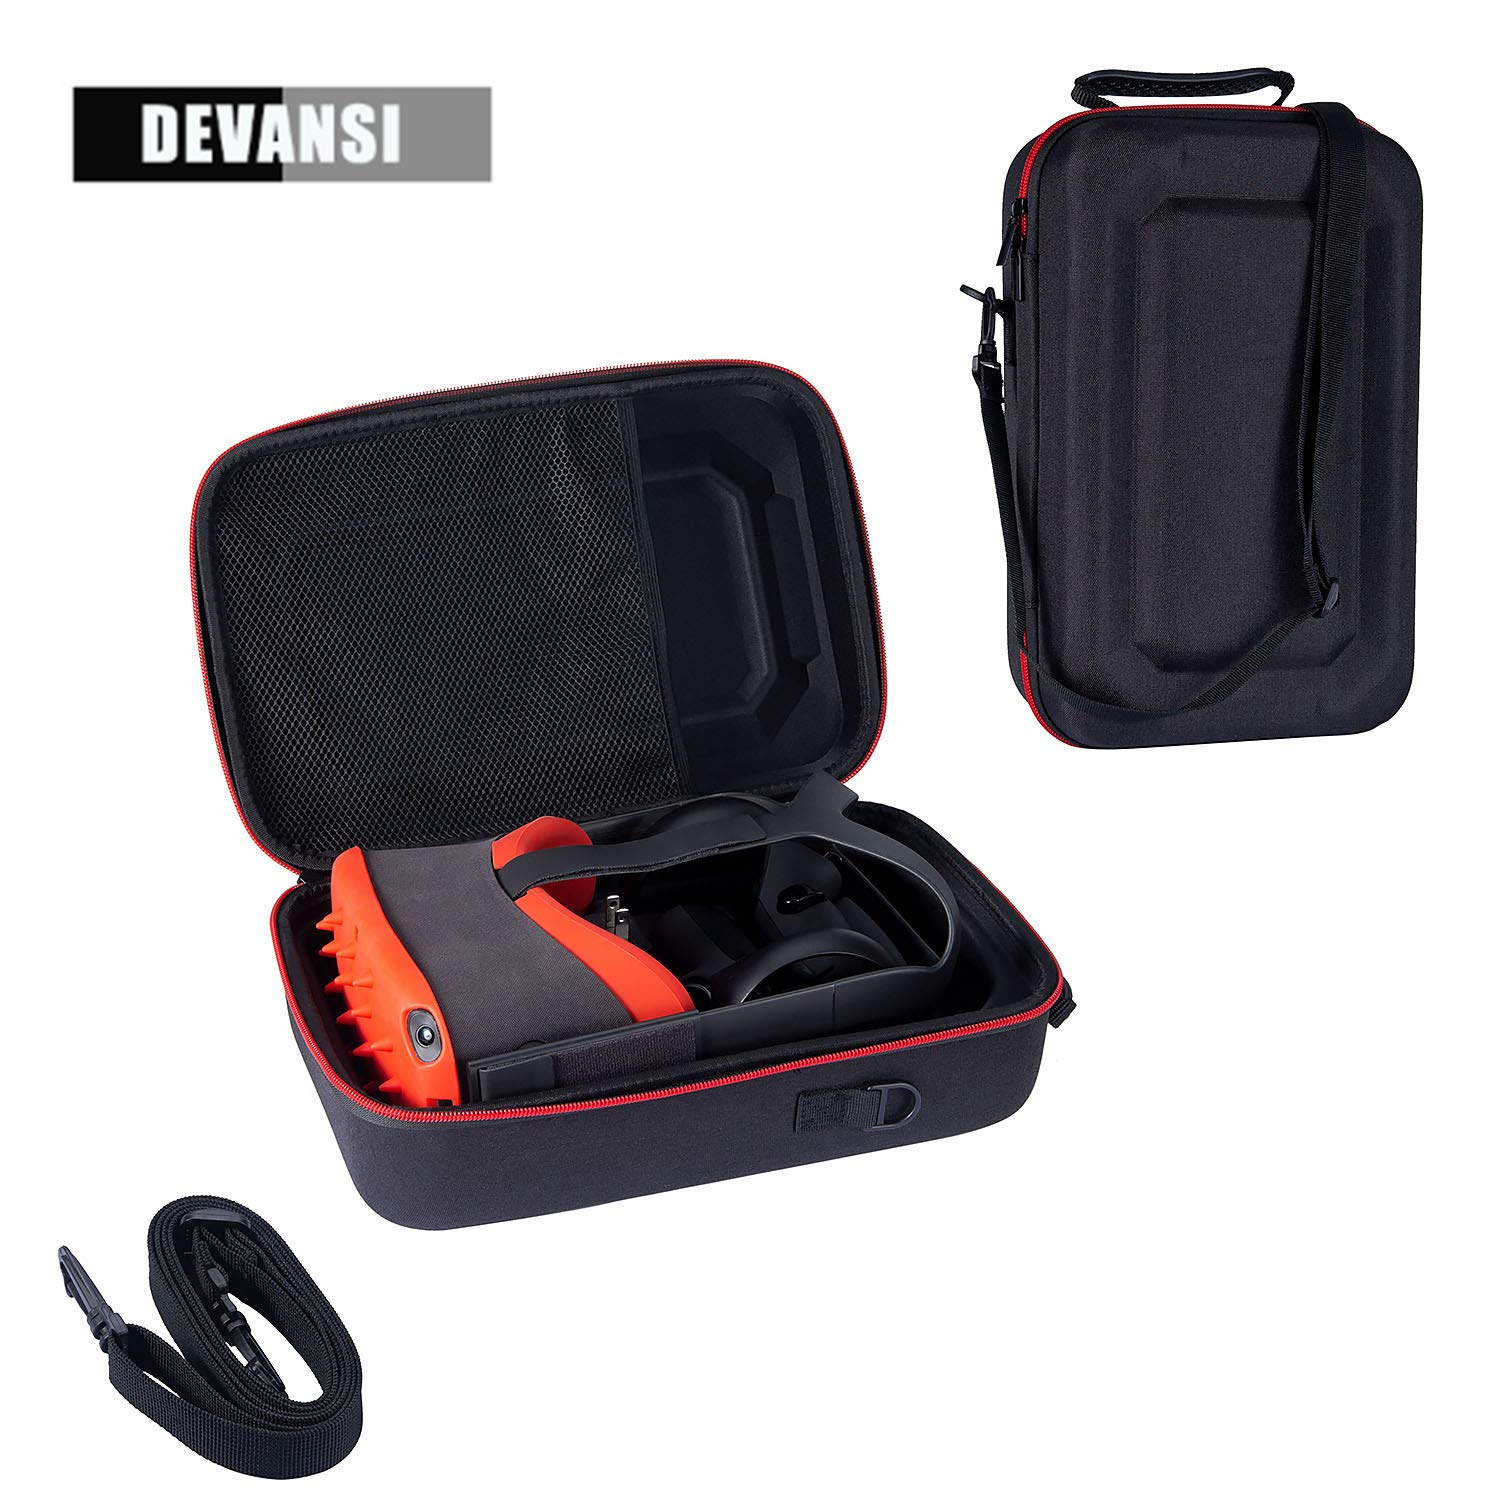 Devansi Pratical Travel Case for Oculus Quest VR Gaming Headset and Controllers Accessories Durable Carrying Bag with…